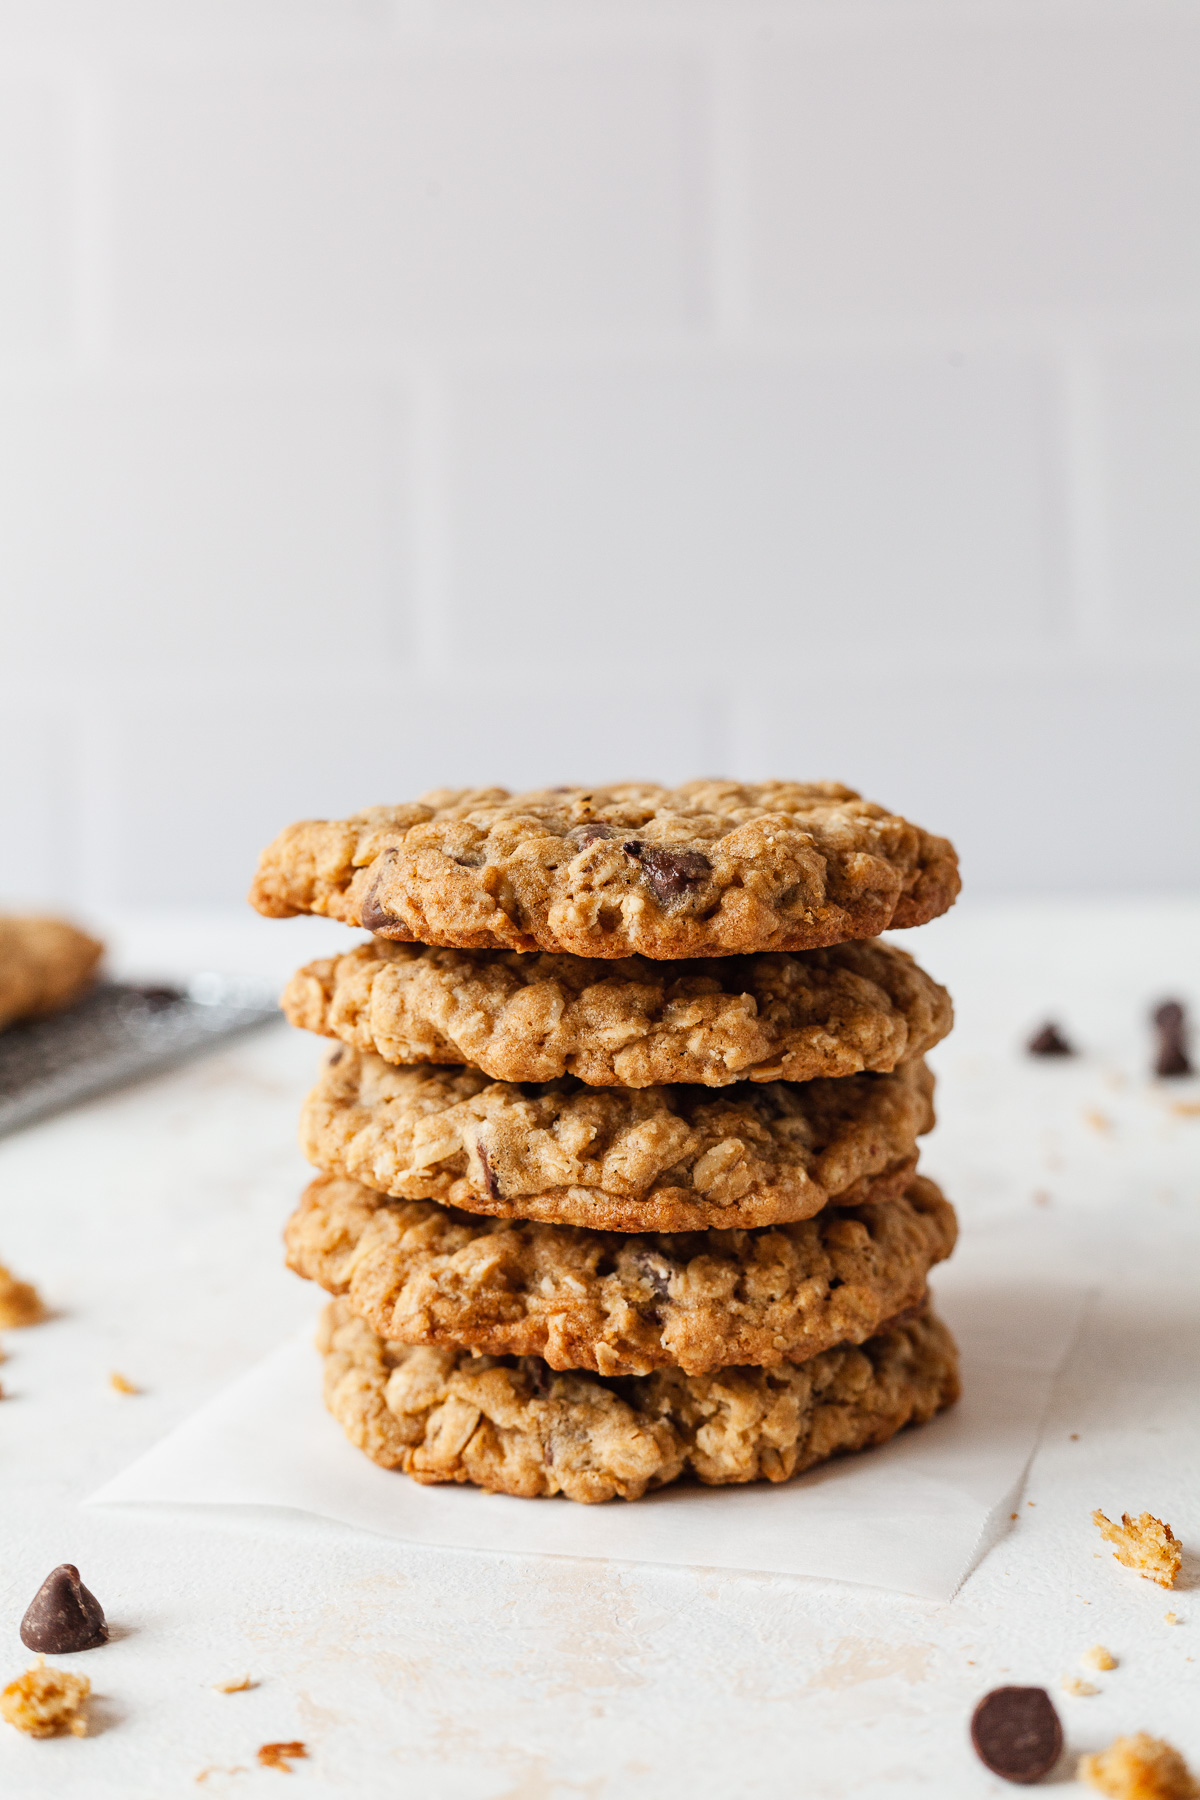 image of oatmeal cookies stacked on top of each other on parchment paper